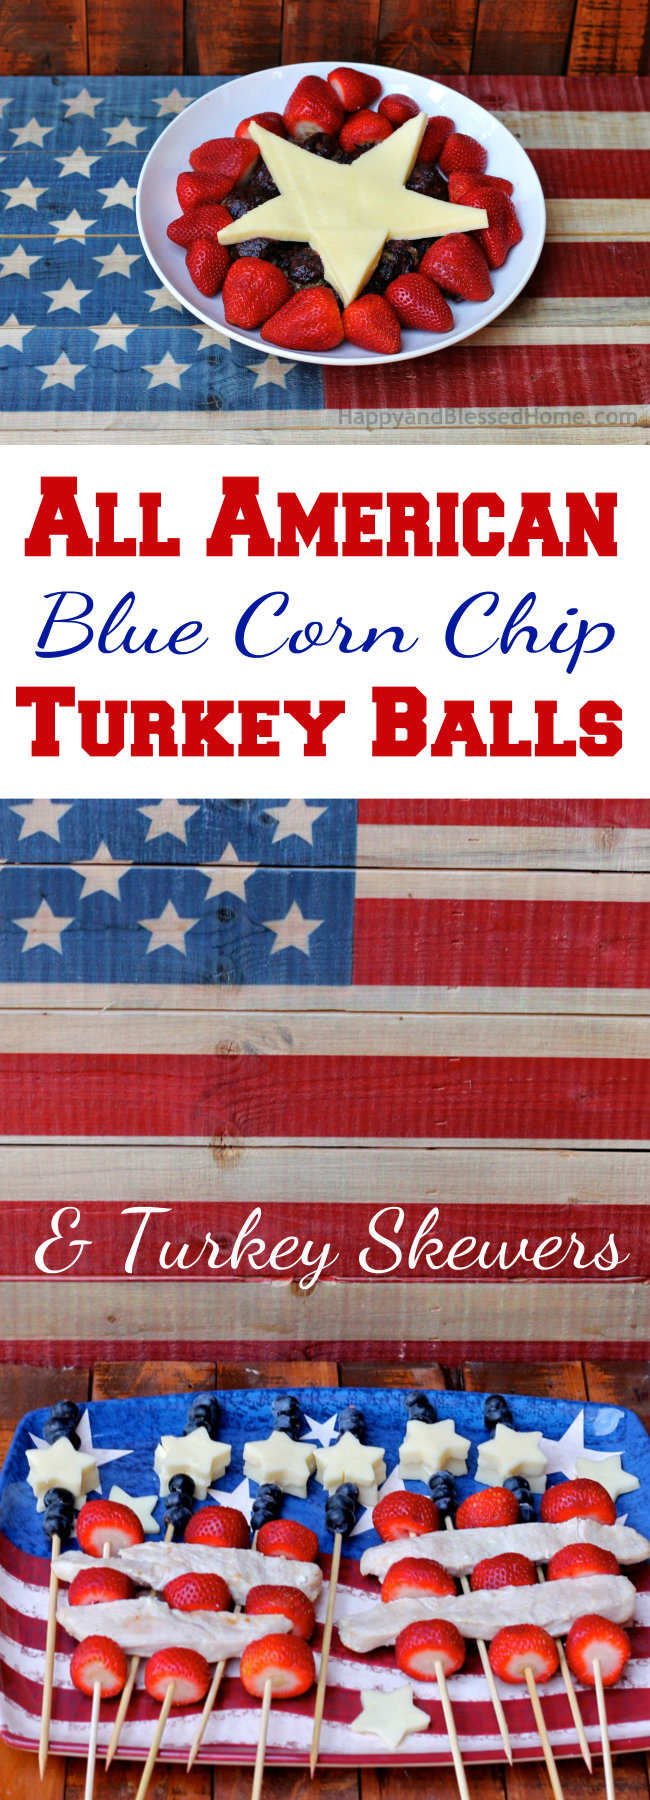 All American Blue Corn Chip Turkey Balls and Turkey Skewers Recipes from HappyandBlessedHome.com